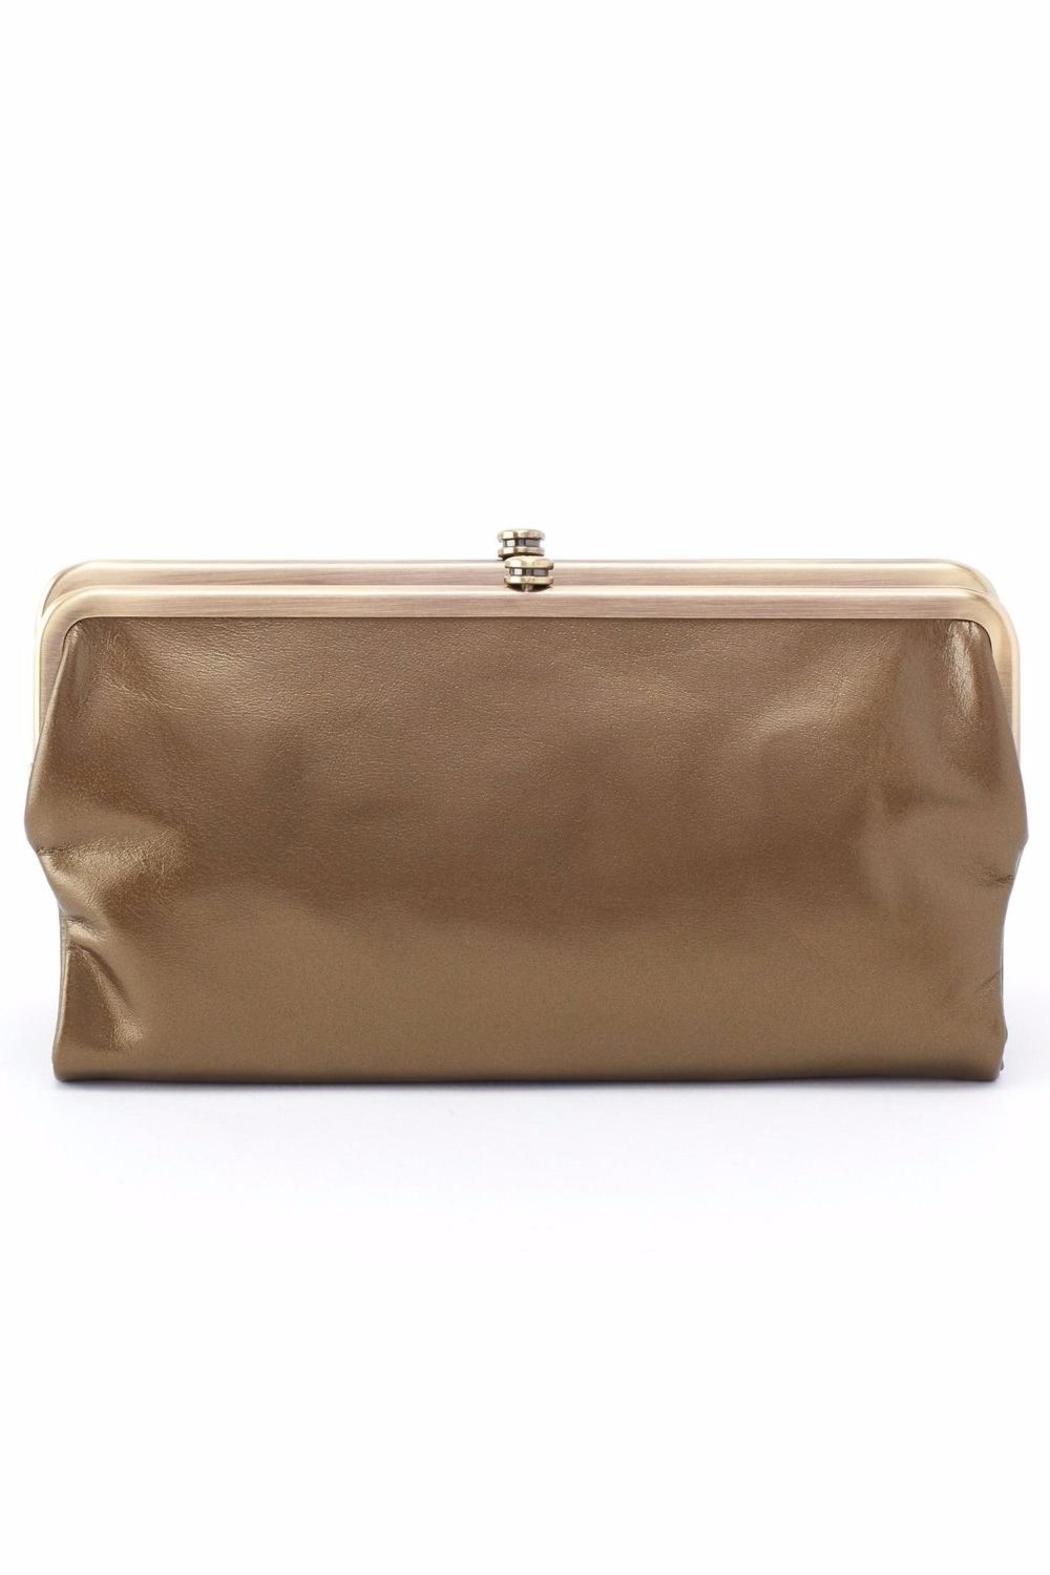 HOBO Bags Lauren Clutch Wallet - Main Image